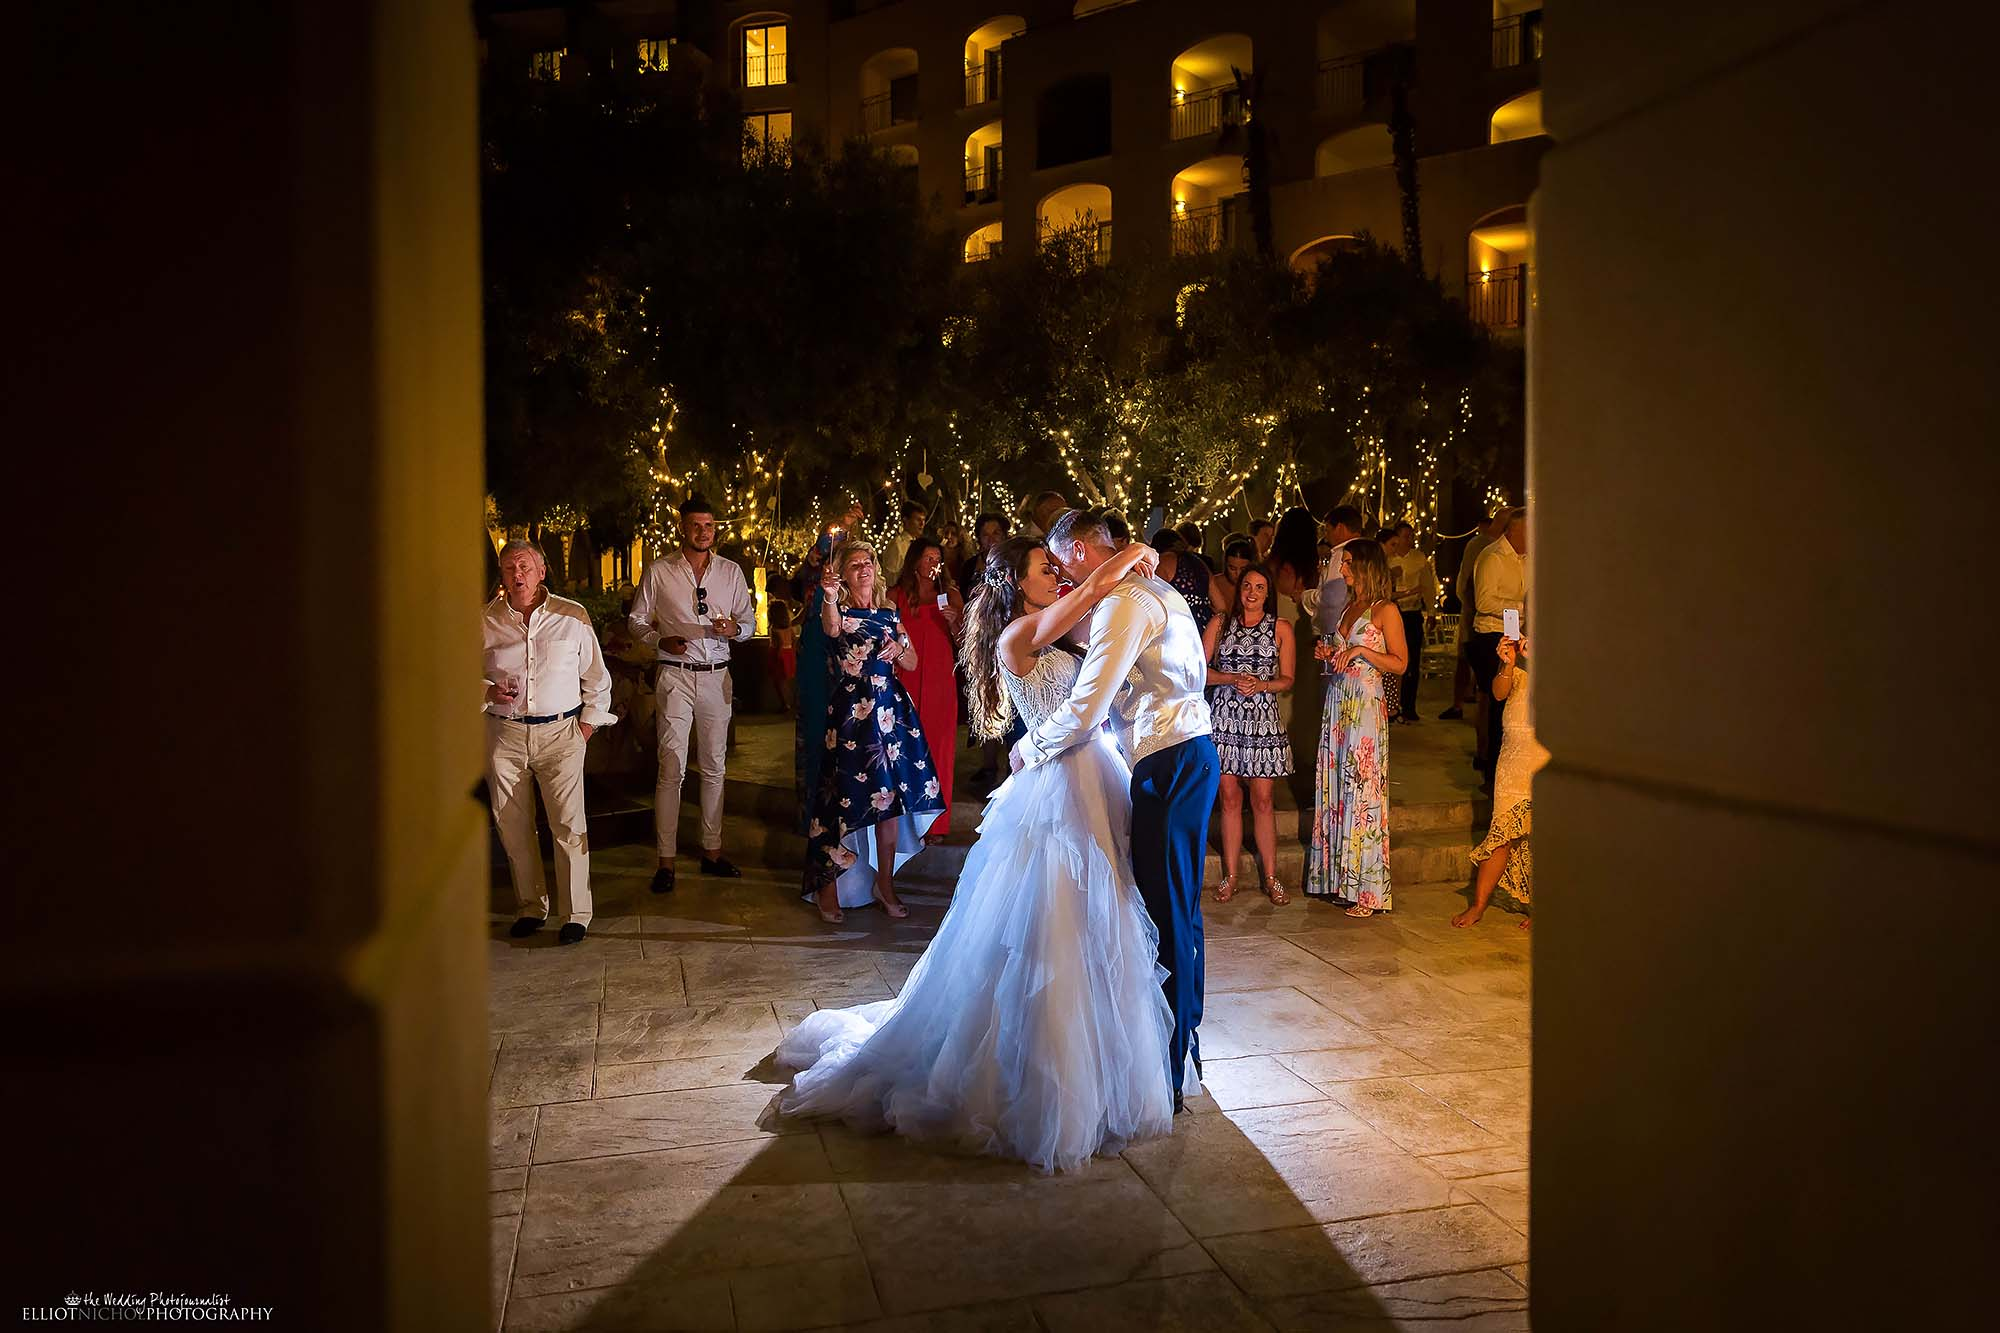 Bride and groom take their first dance together as husband and wife.